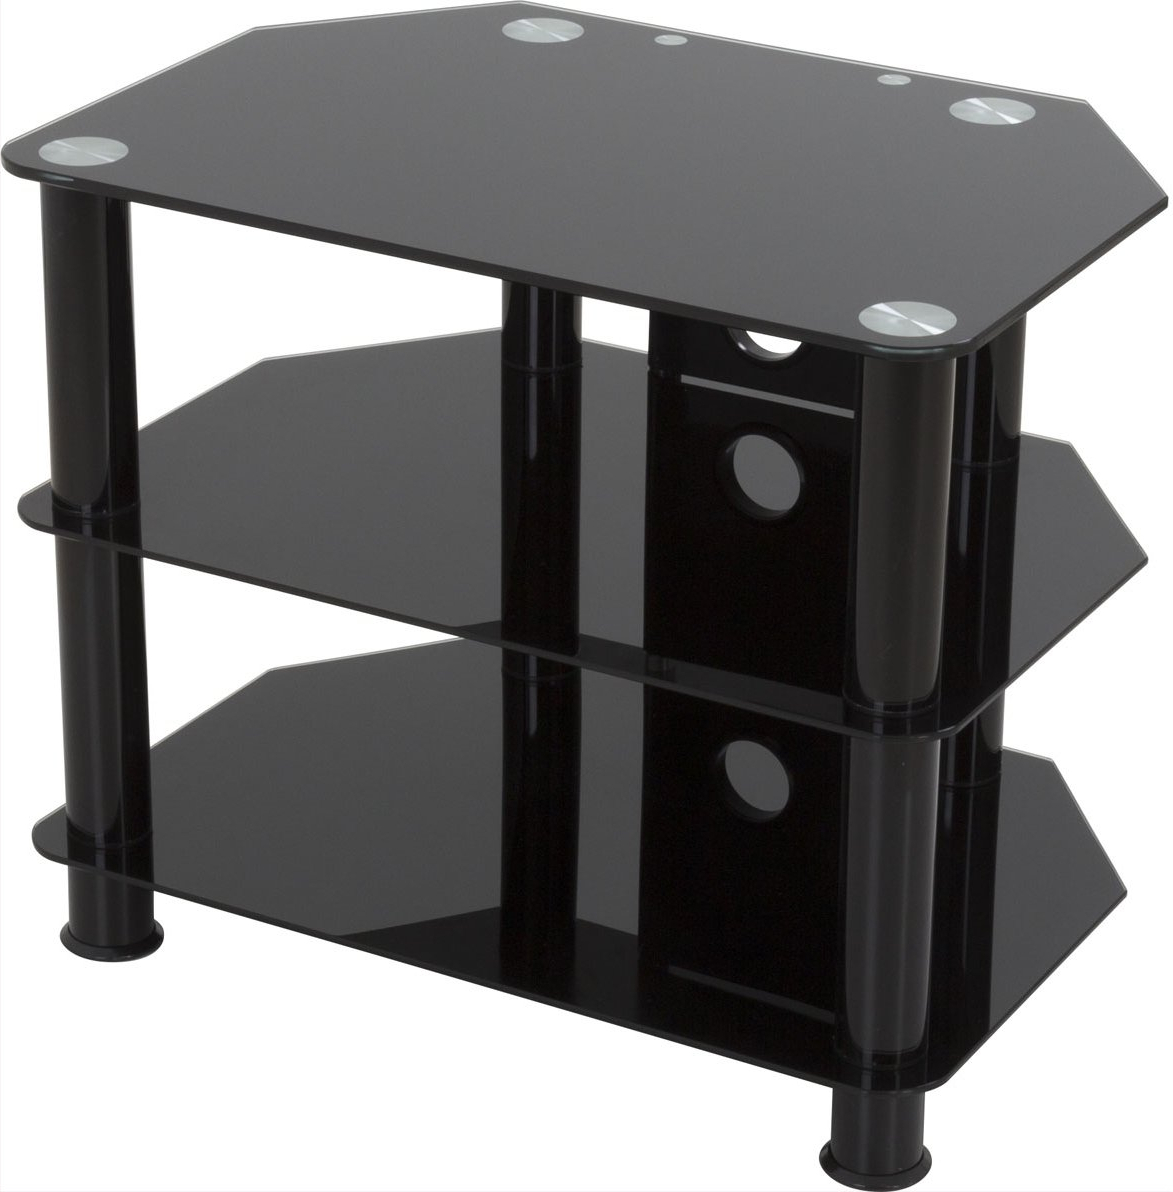 Avf Sdc600cmbb Universal Black Glass And Legs Tv Stand For With Regard To Tier Entertainment Tv Stands In Black (View 5 of 20)